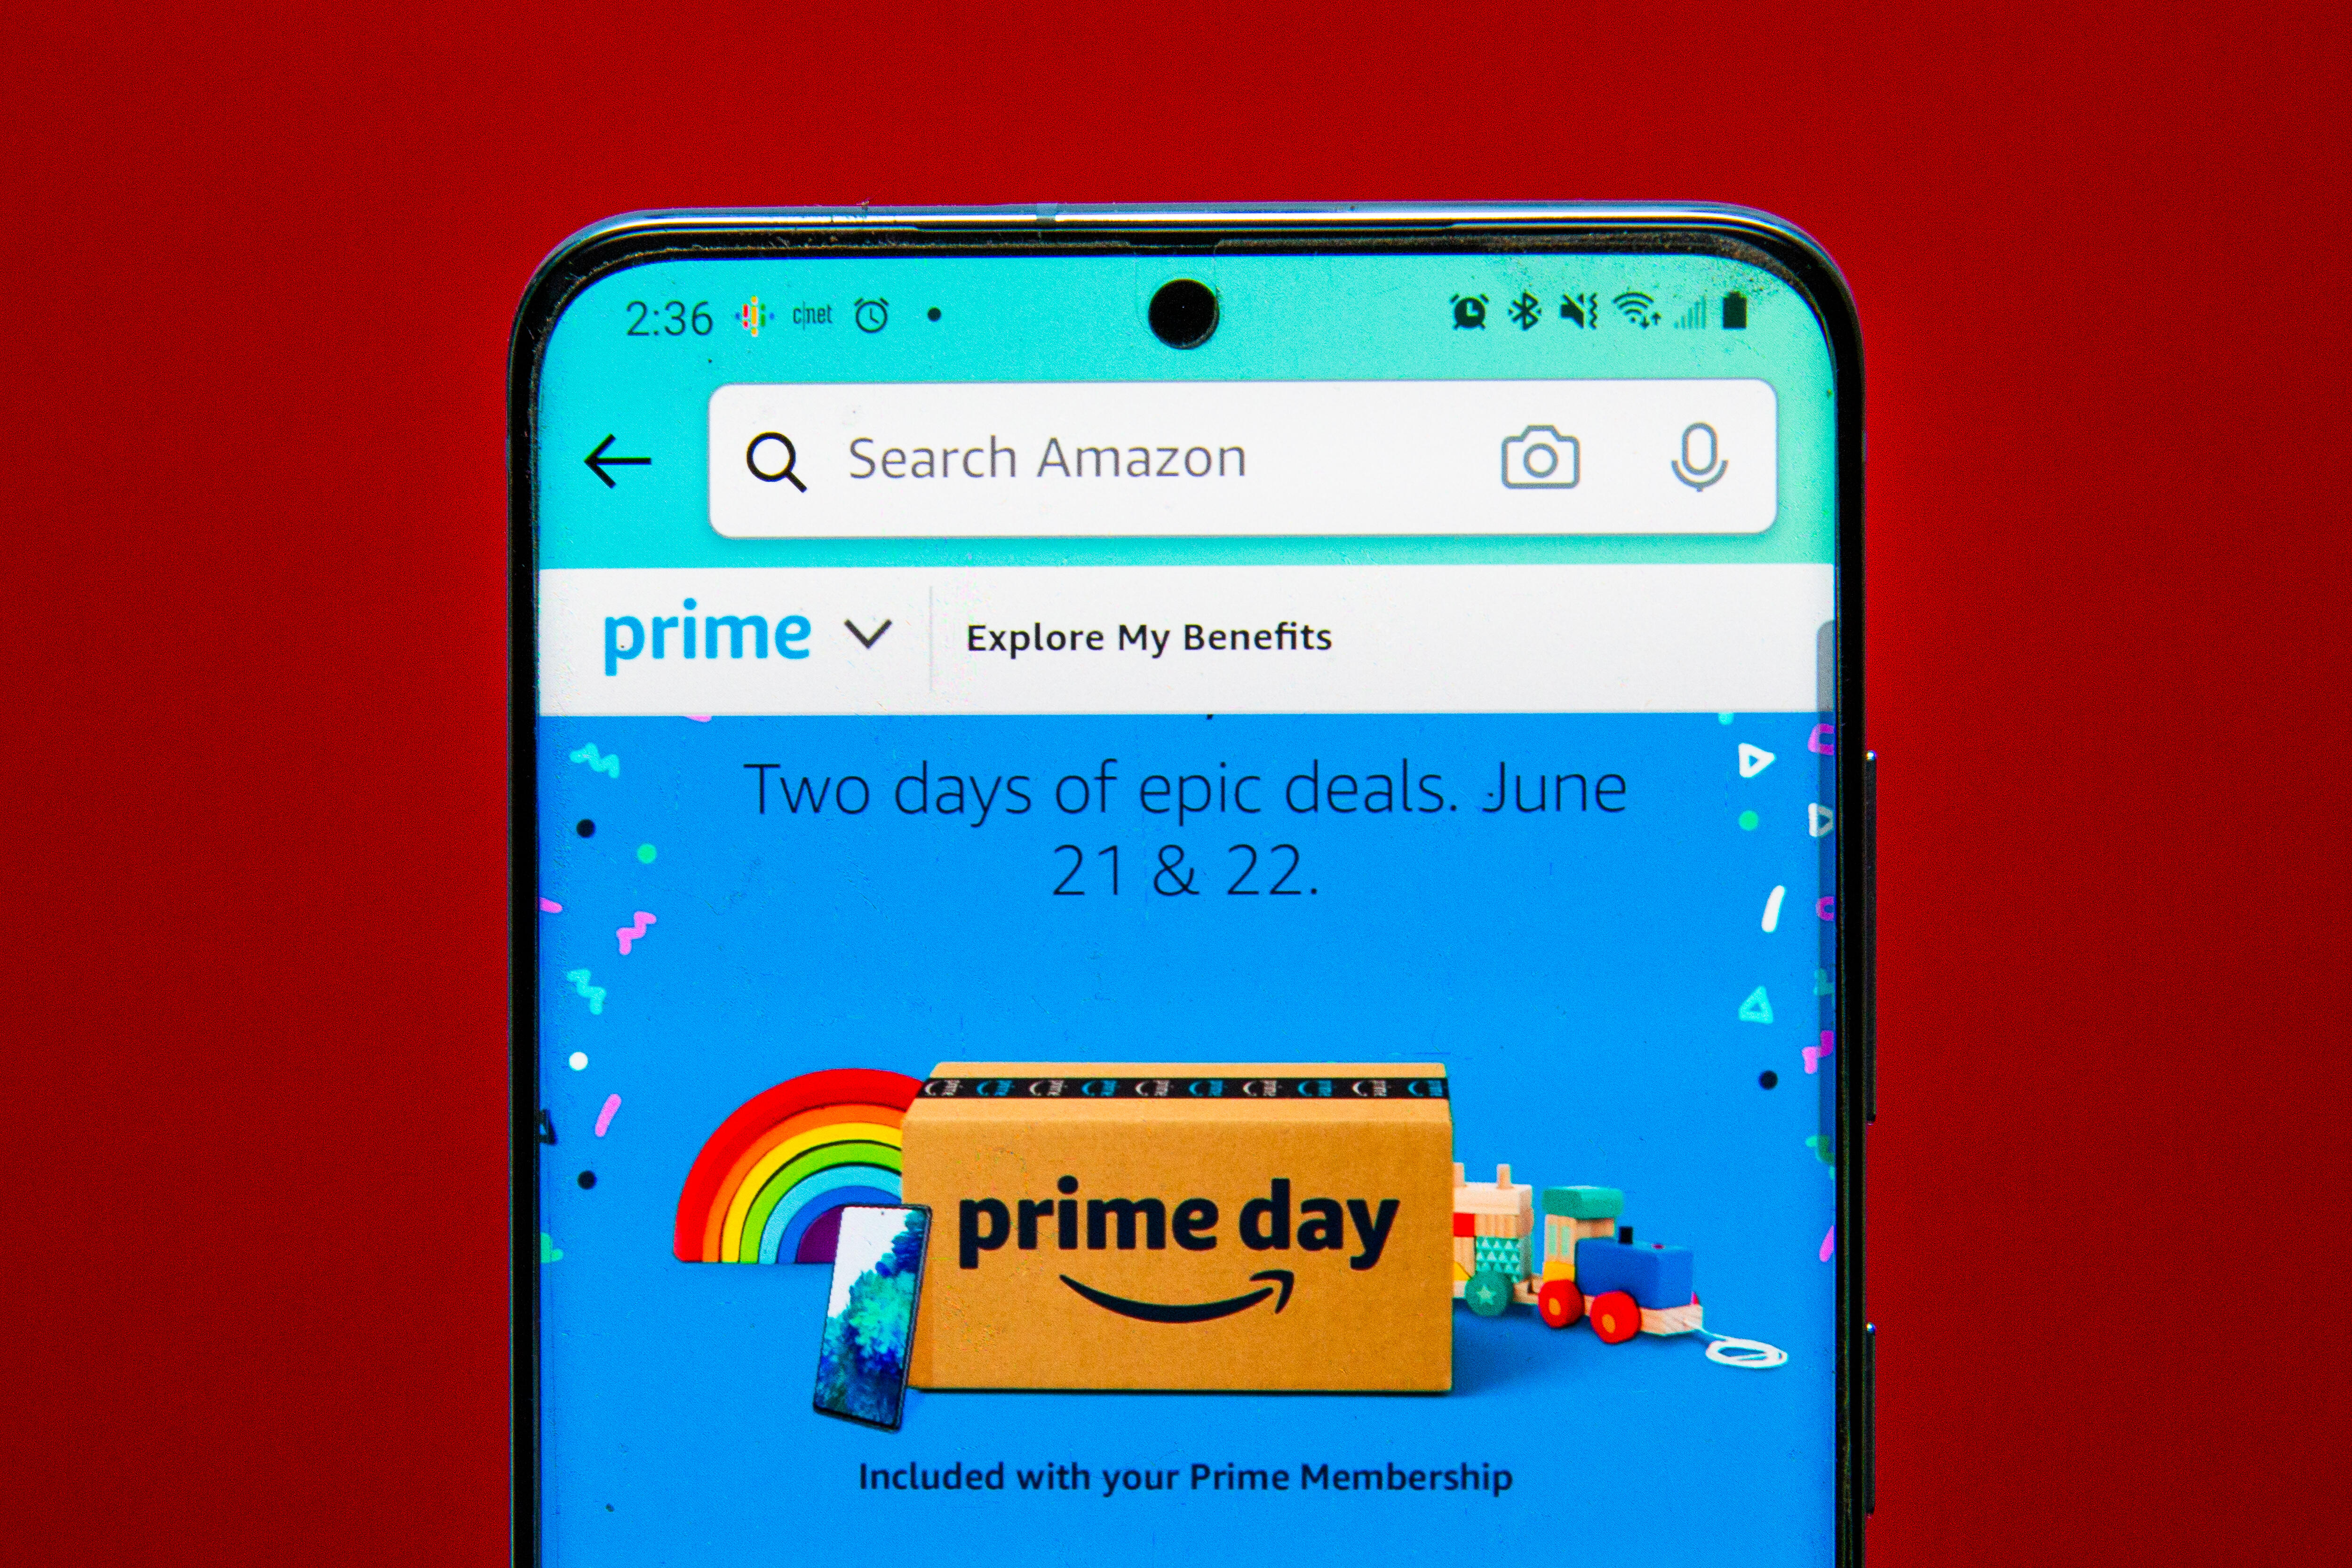 Amazon Prime Day Promotions for June 2021